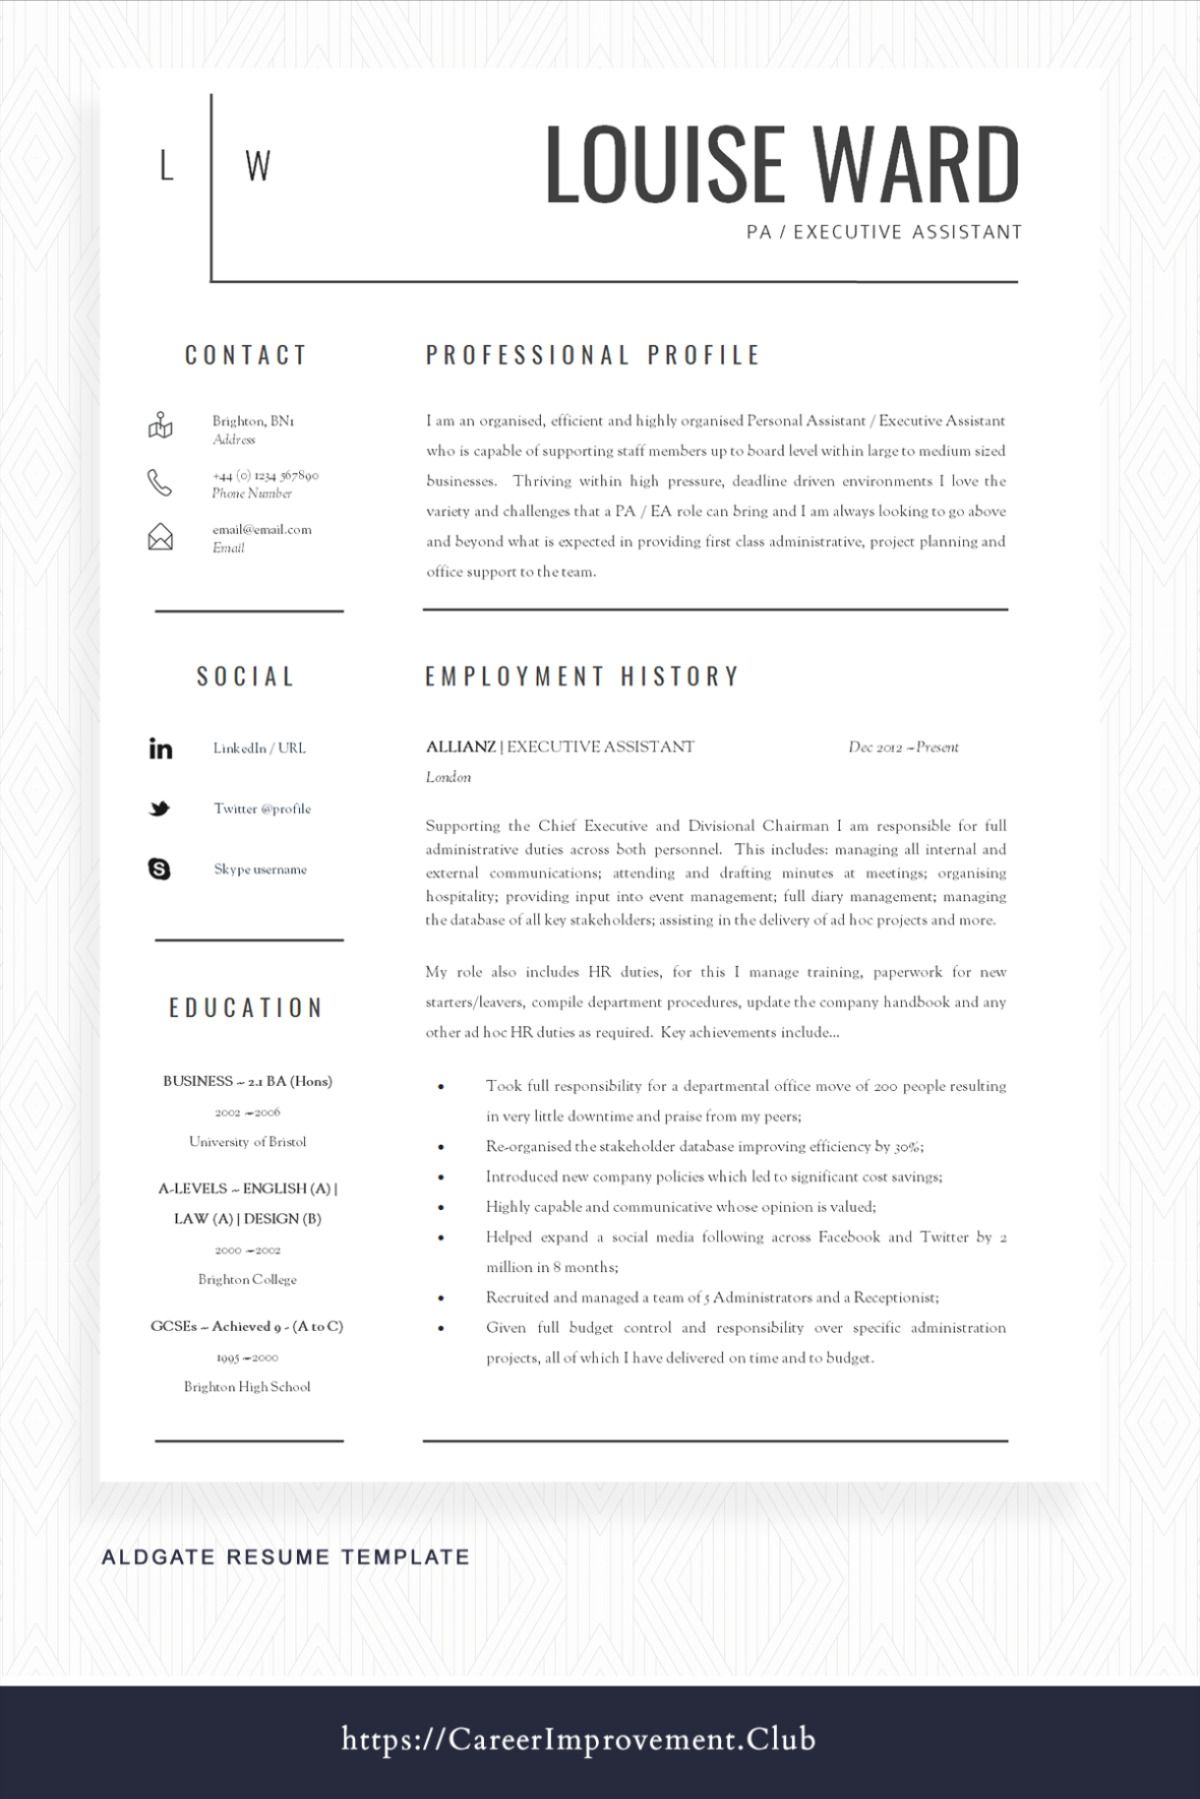 CV Template + Cover Letter + Resume